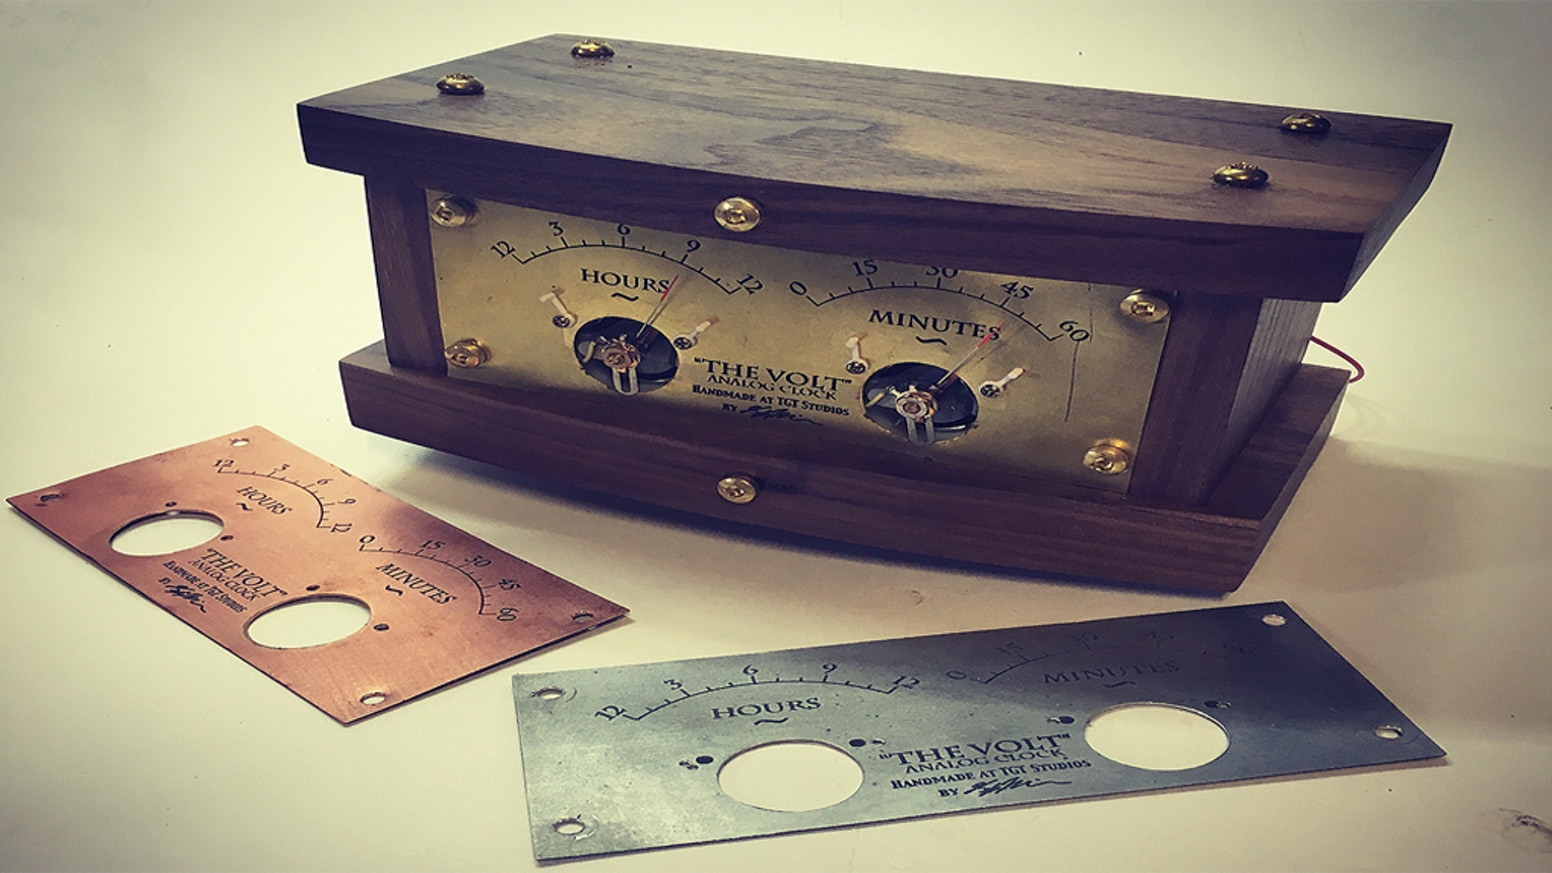 """""""The Volt"""" is an open source, hackable, analog clock. Built by hand in exotic hardwoods, brass, steel, and copper. 4 Models + DIY"""